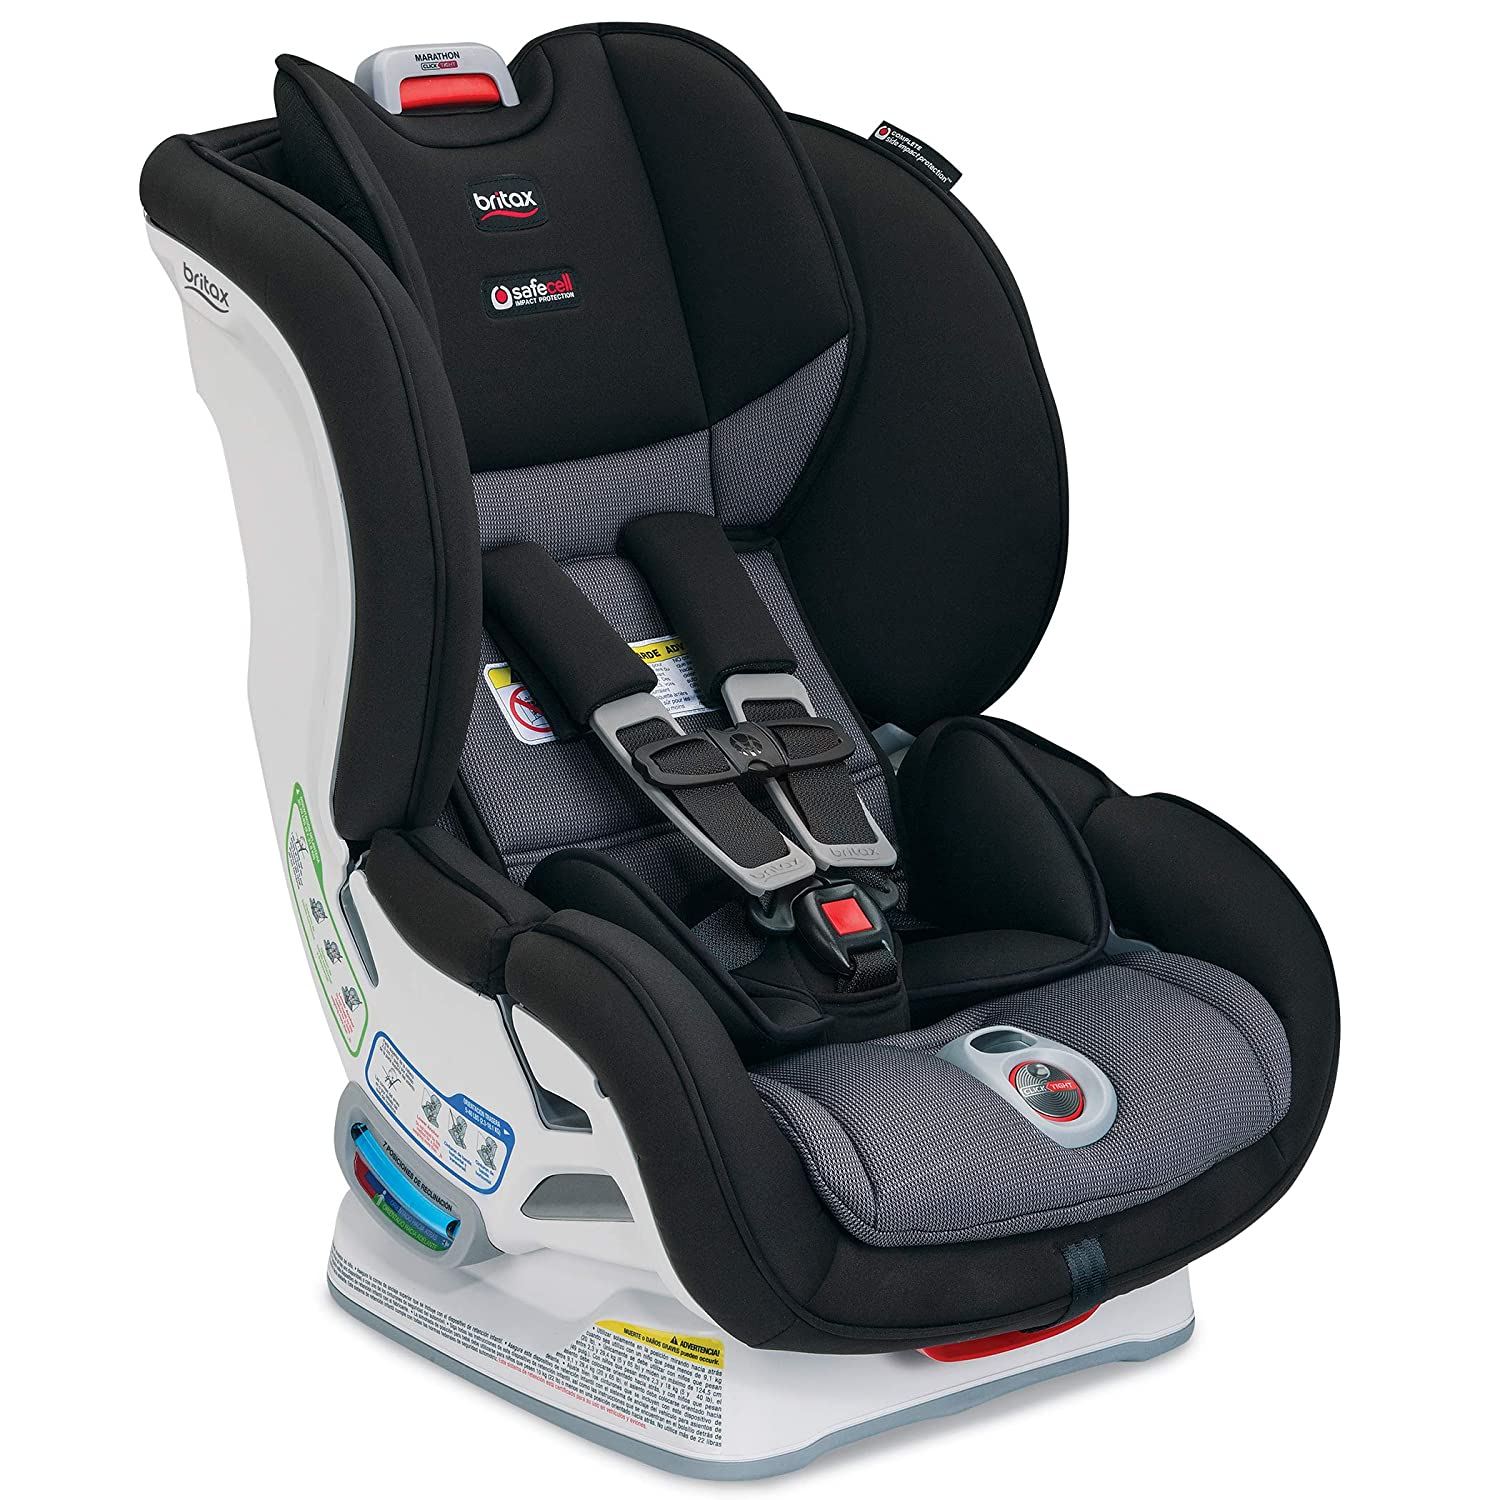 Top 7 Best Affordable Convertible Car Seats (2020 Reviews) 5